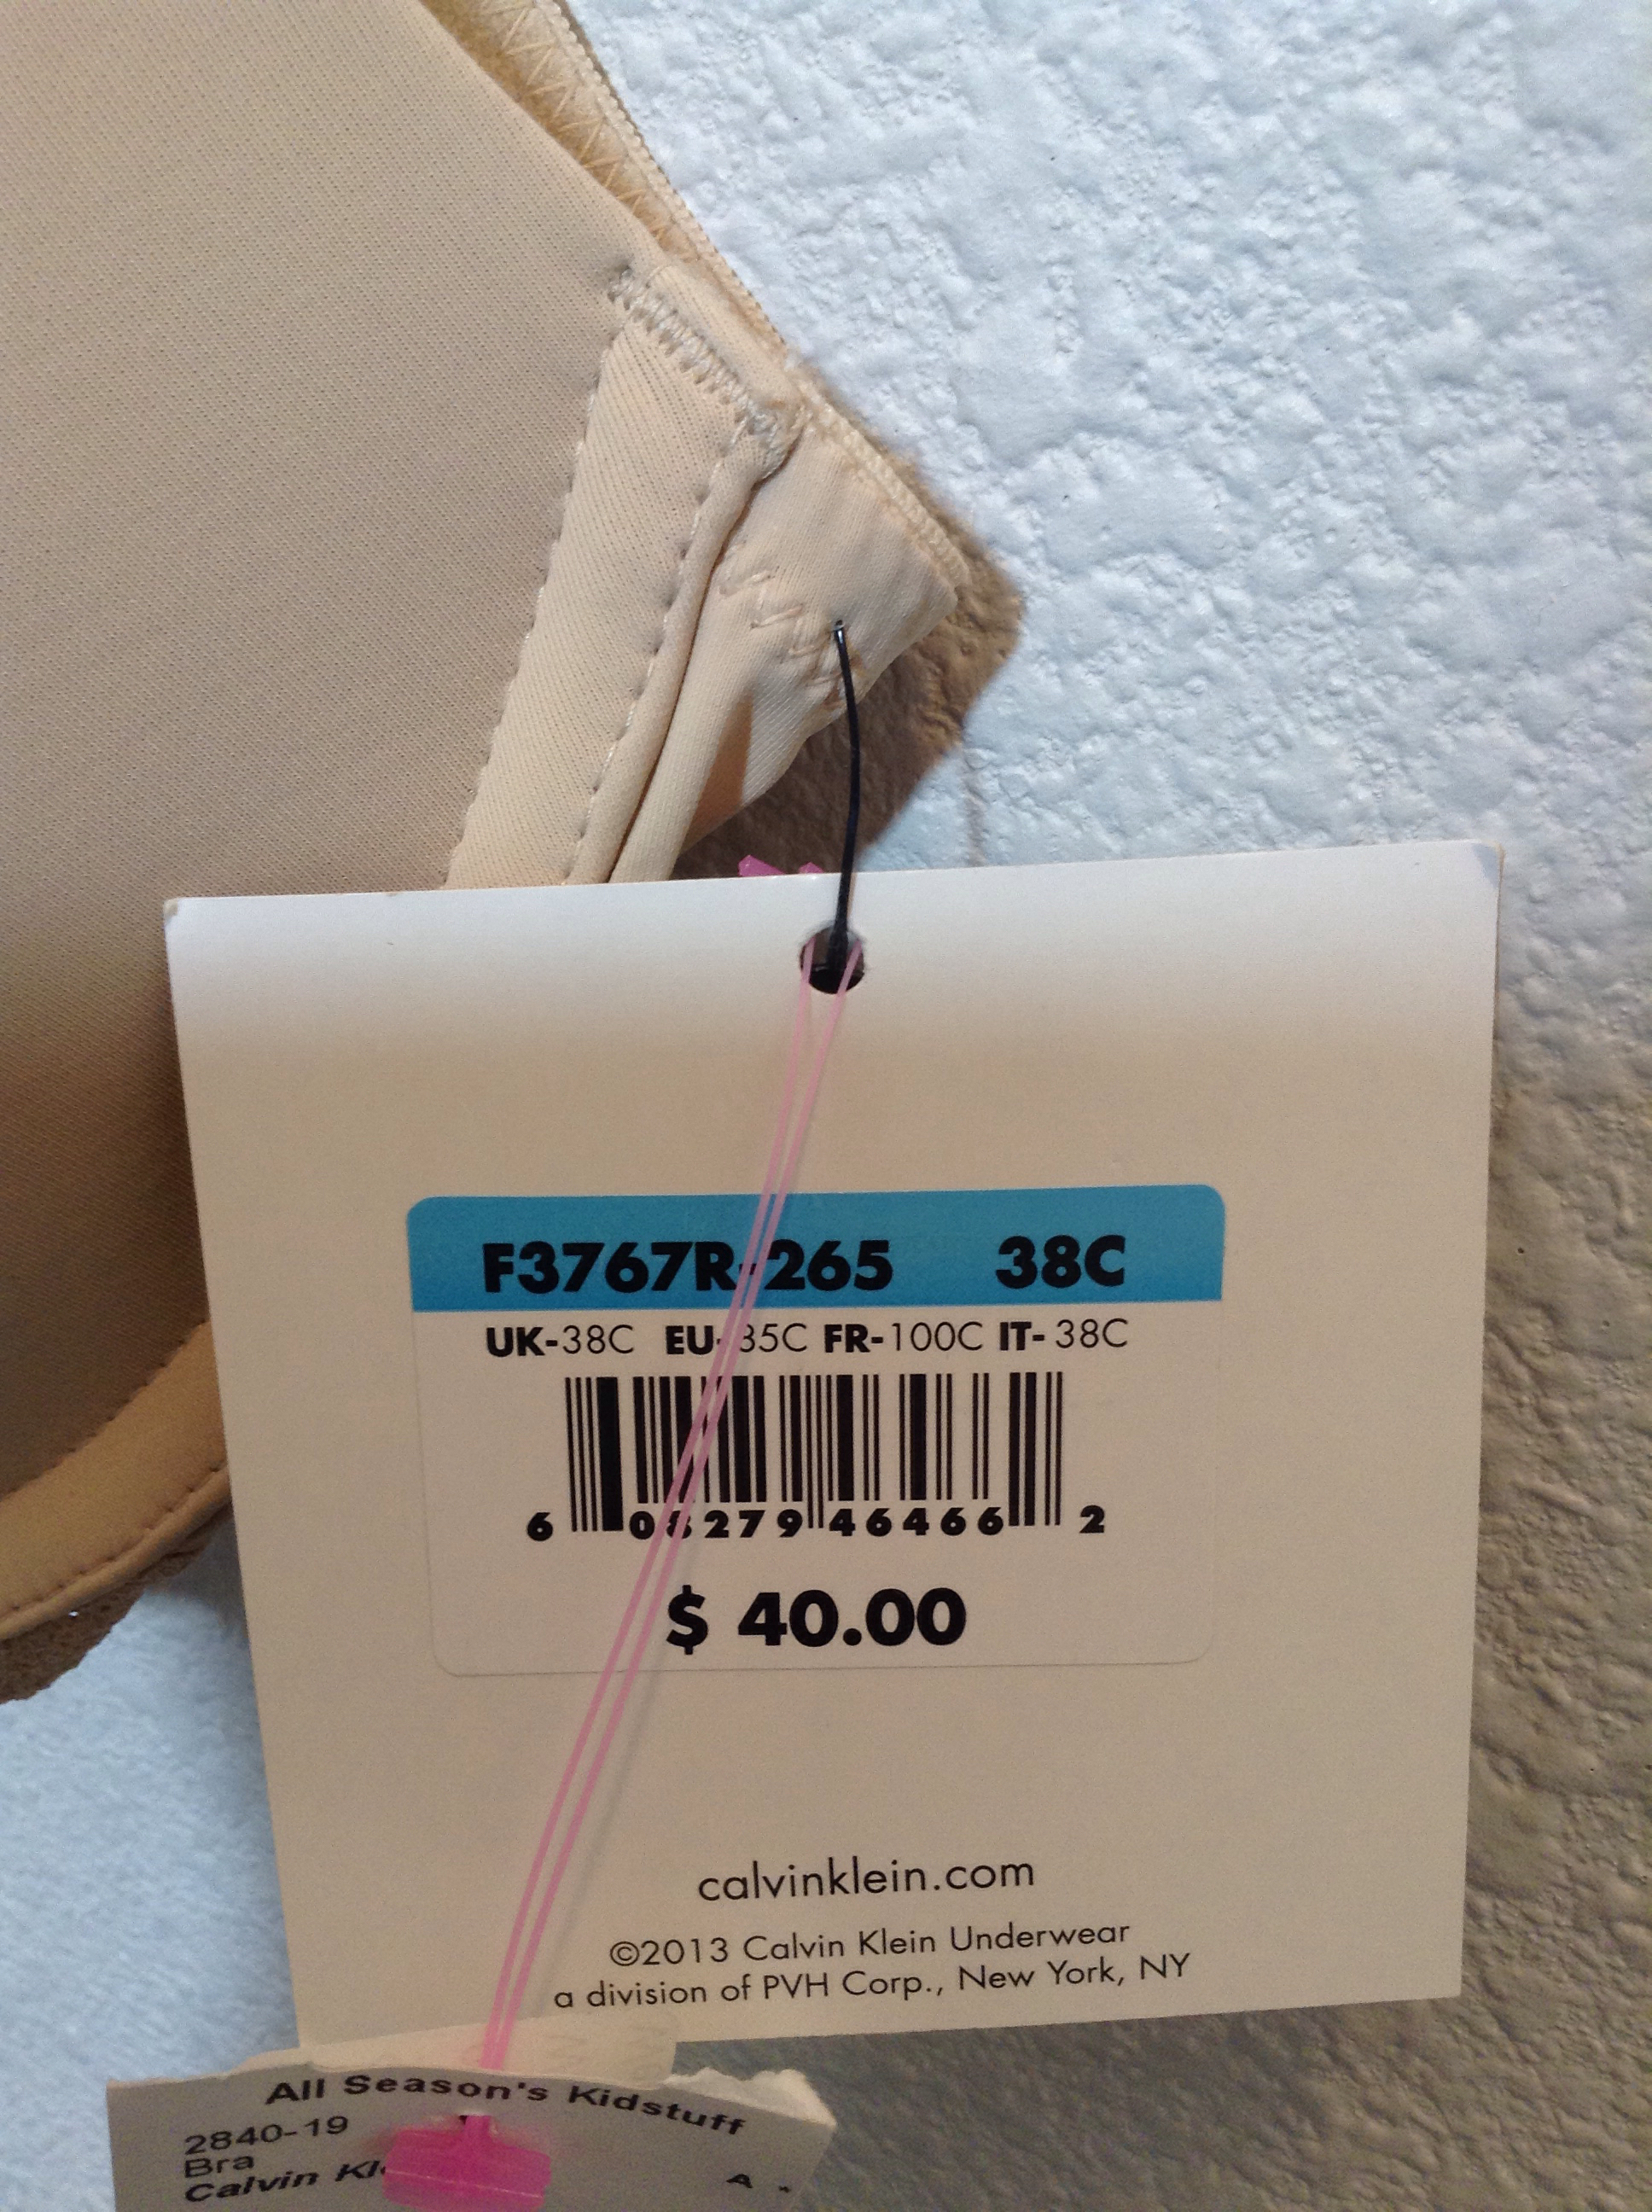 05210fcde8 Calvin Klein push up bra Size 38C Bra nude new with tag 4G